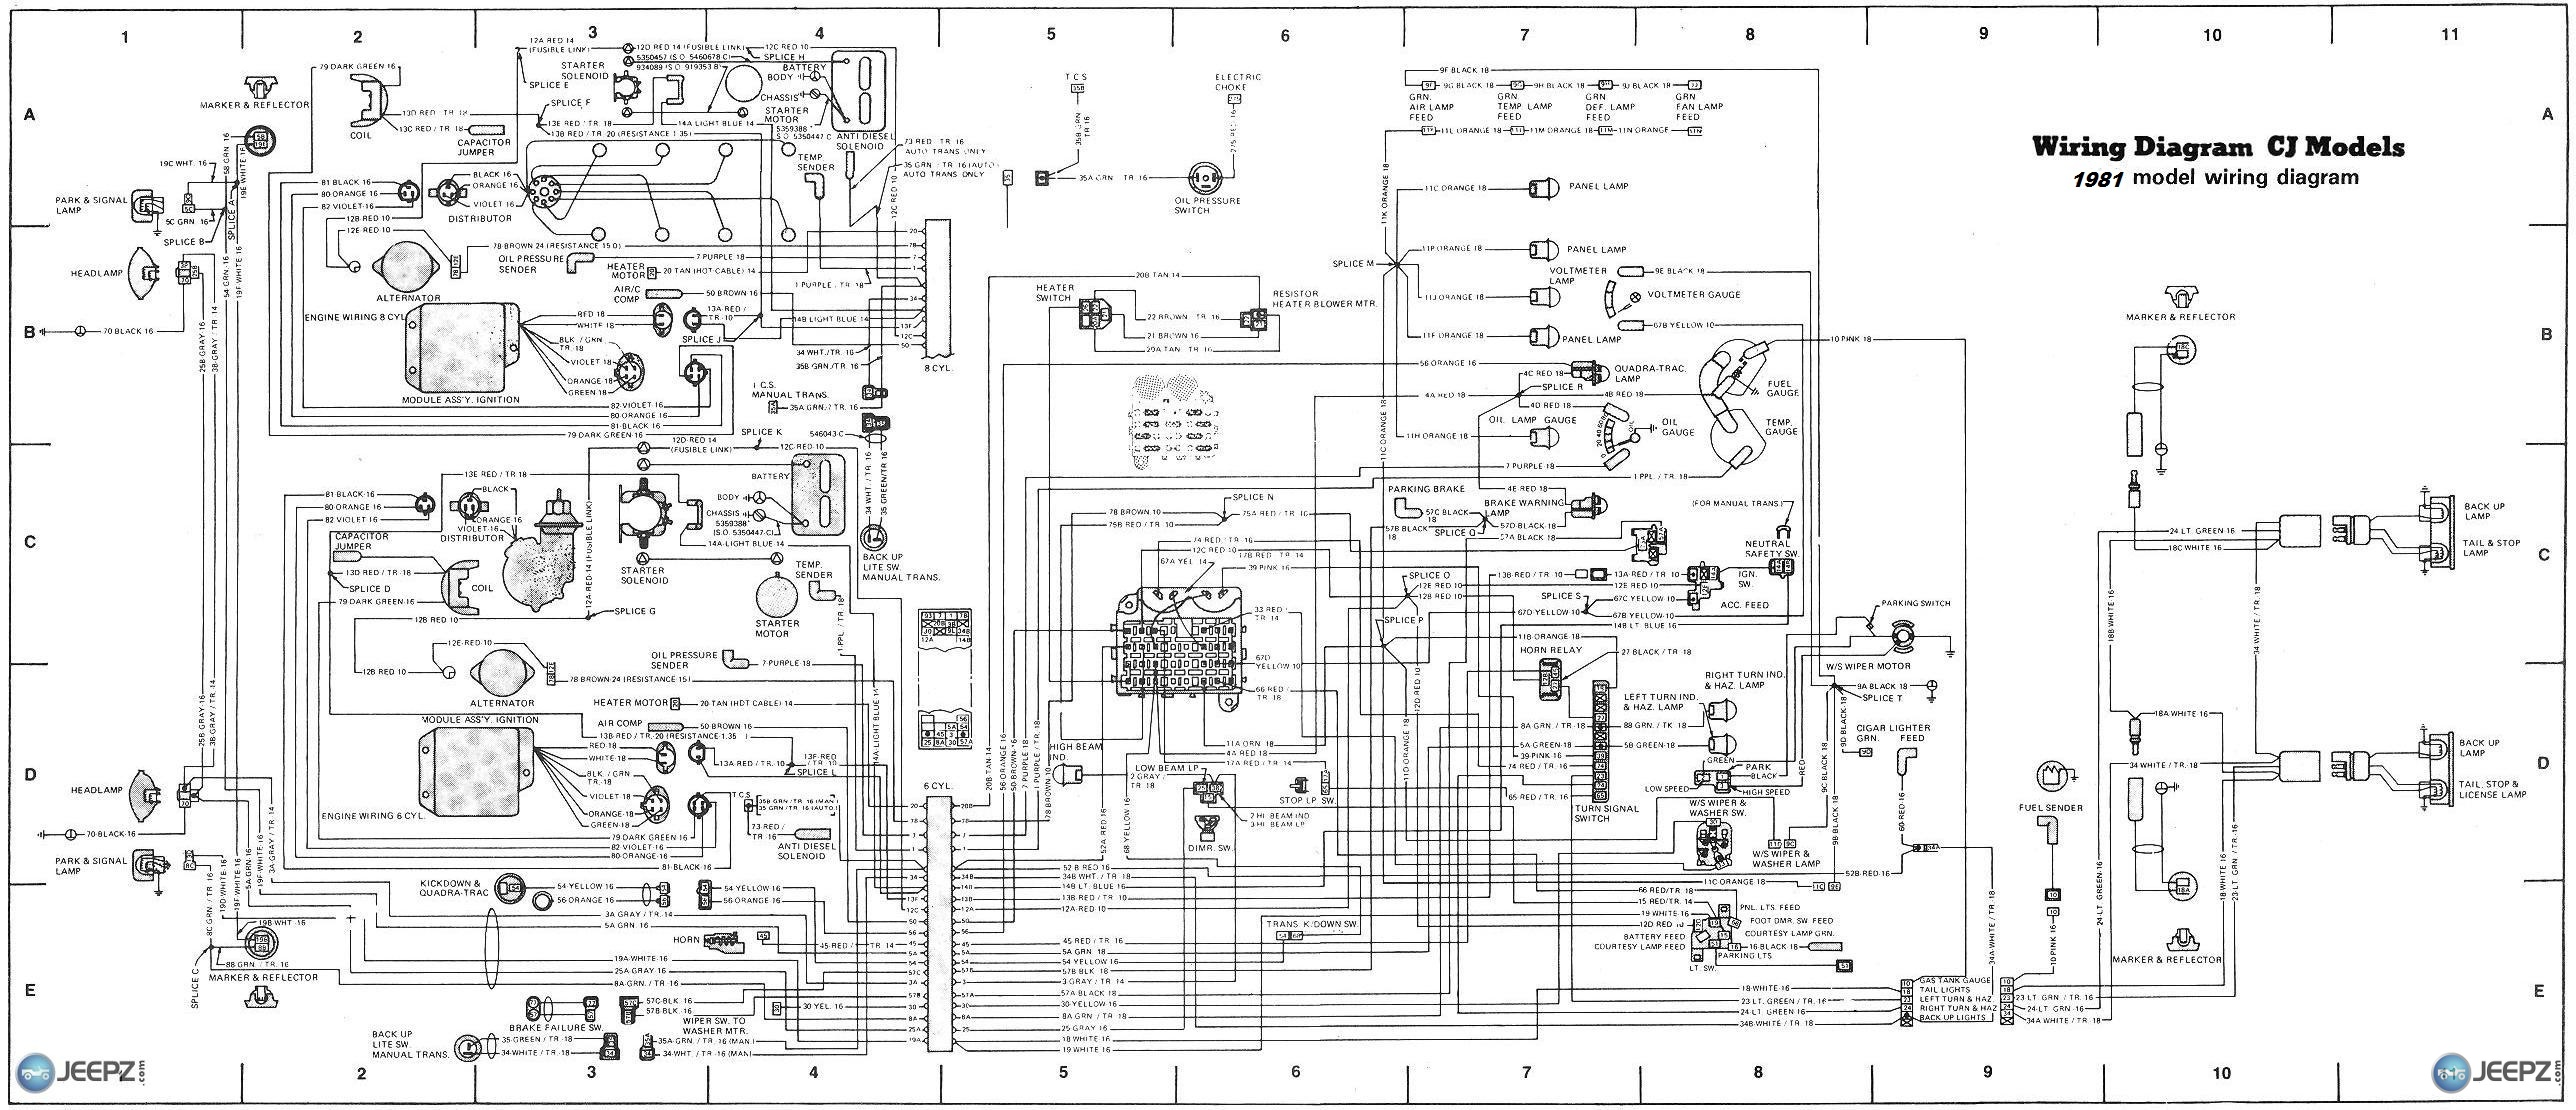 1980 jeep cj7 wiring diagram auto electrical wiring diagram jeep cj7 heater wiring  diagram 1980 jeep